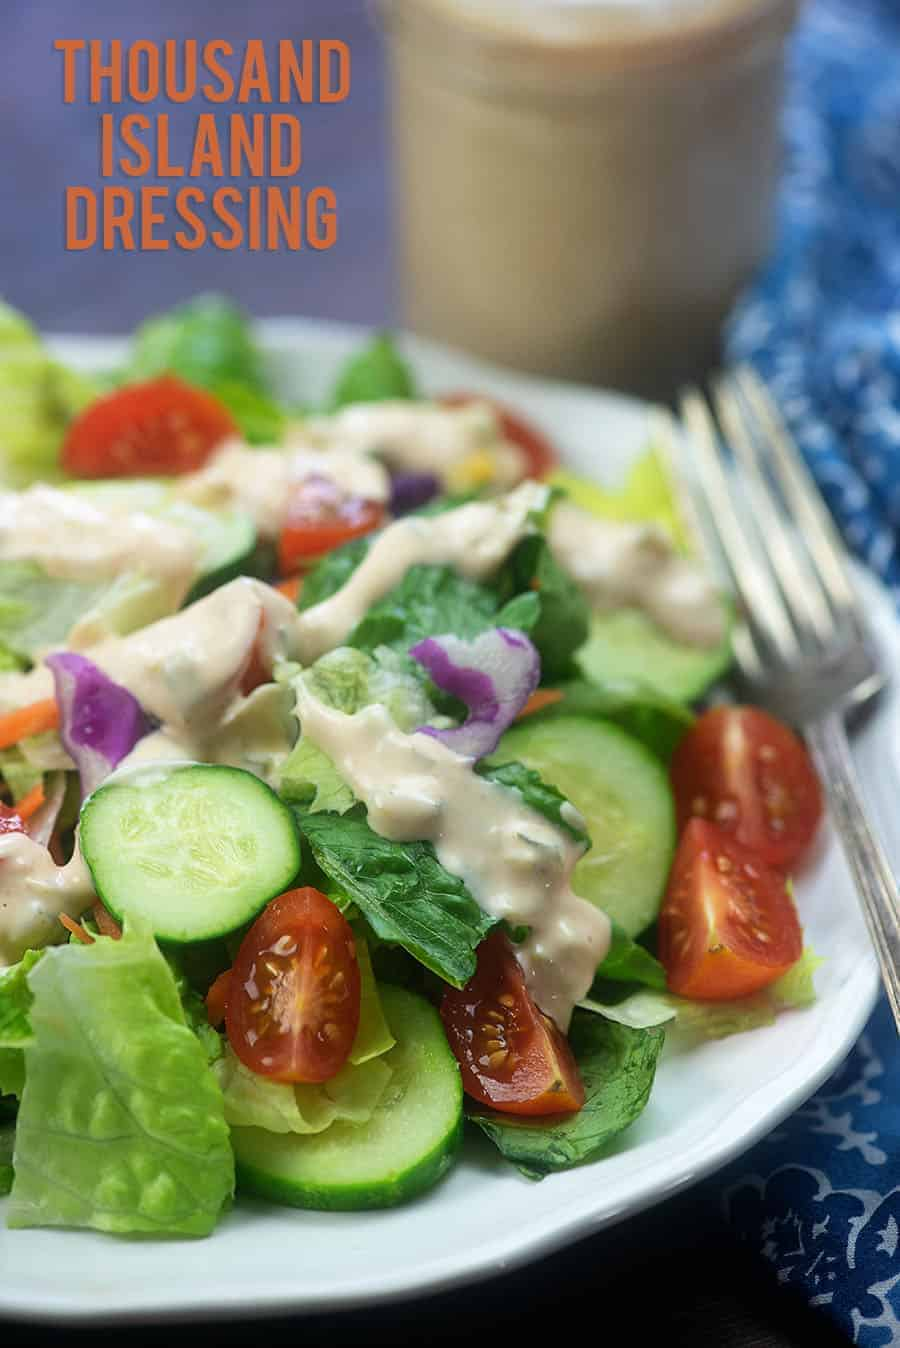 Thousand Island Dressing That Low Carb Life